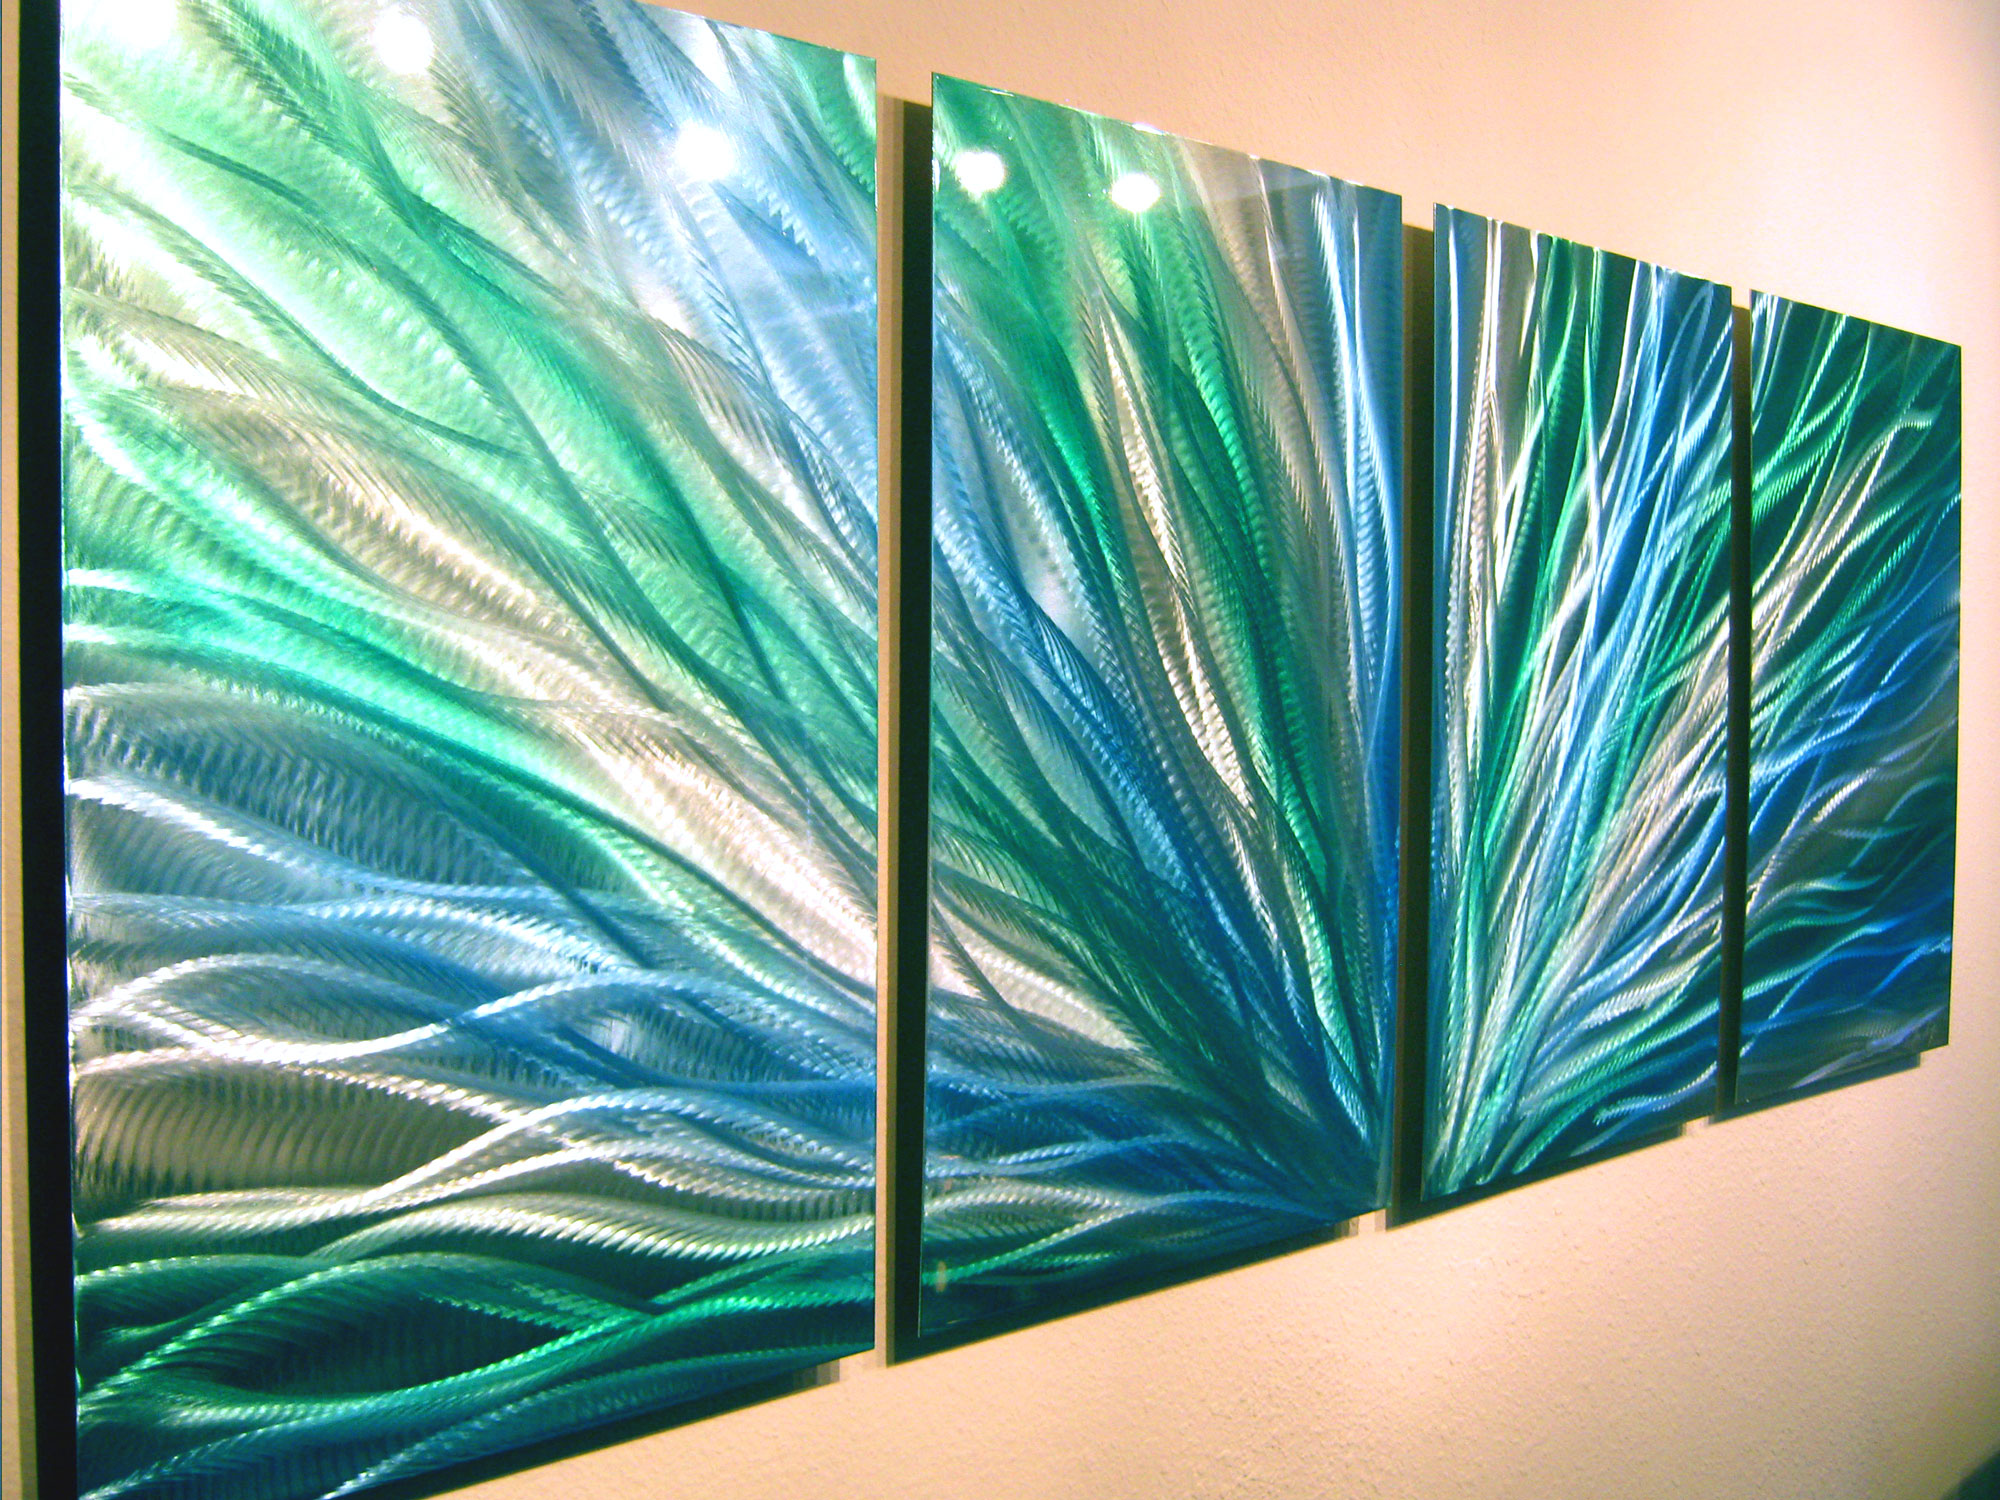 Blue Metal Wall Art Impressive Radiance Blue Green Abstract Metal Wall Art Contemporary Modern Design Ideas